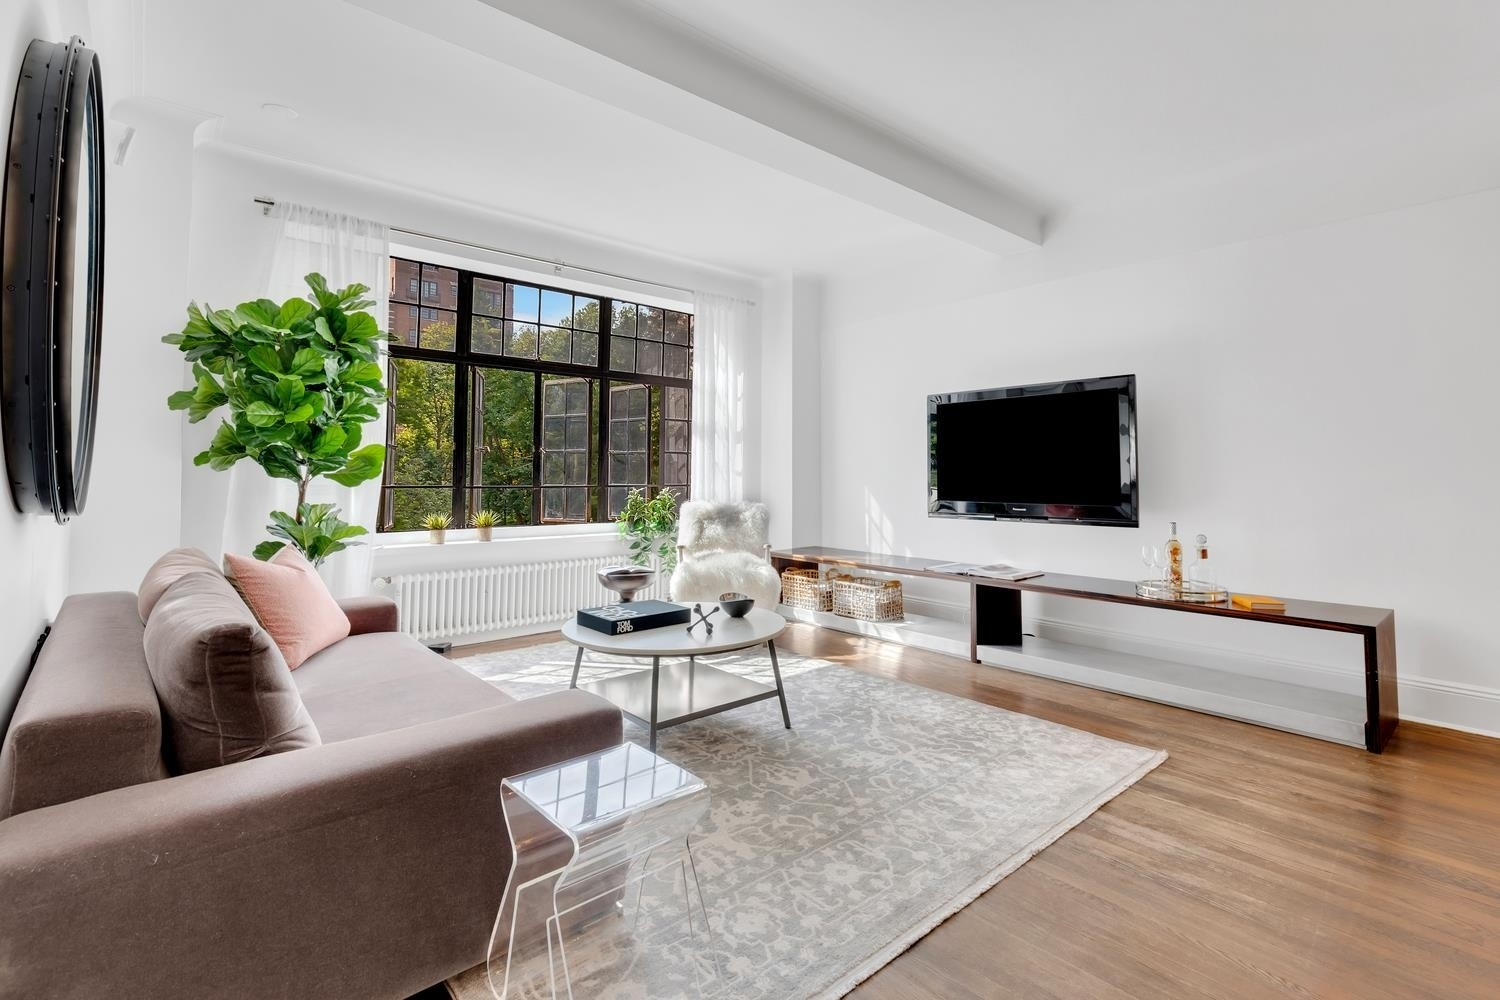 13. Co-op Properties for Sale at GRAMERCY OWNERS LTD, 44 GRAMERCY PARK N, 4C Gramercy Park, New York, NY 10010